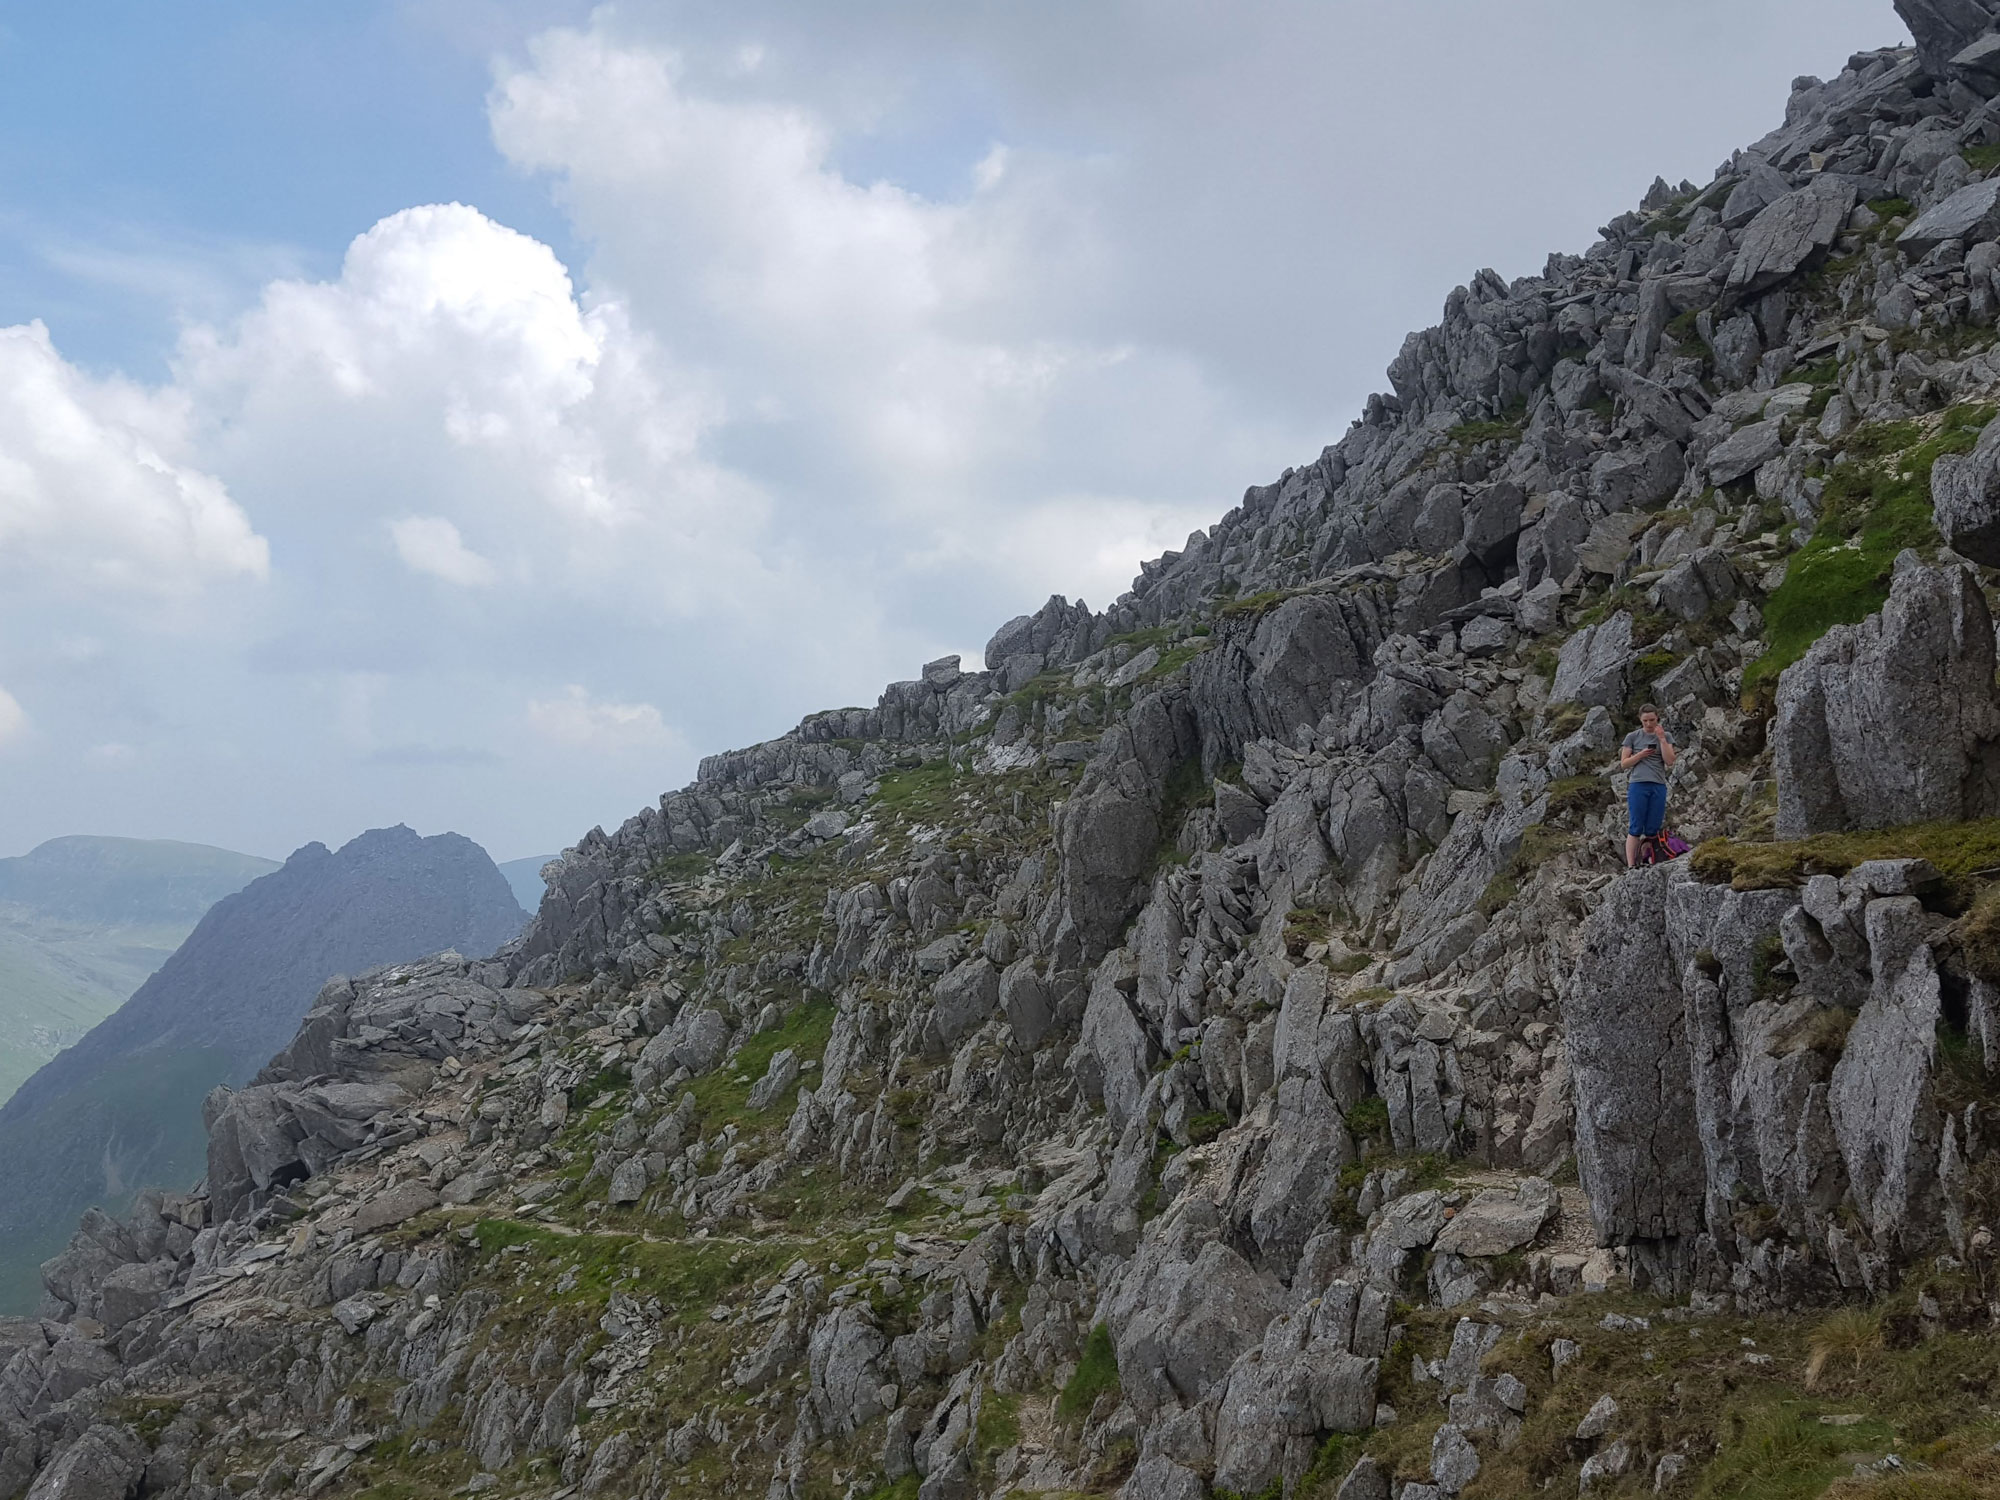 The Glyders, Snowdonia